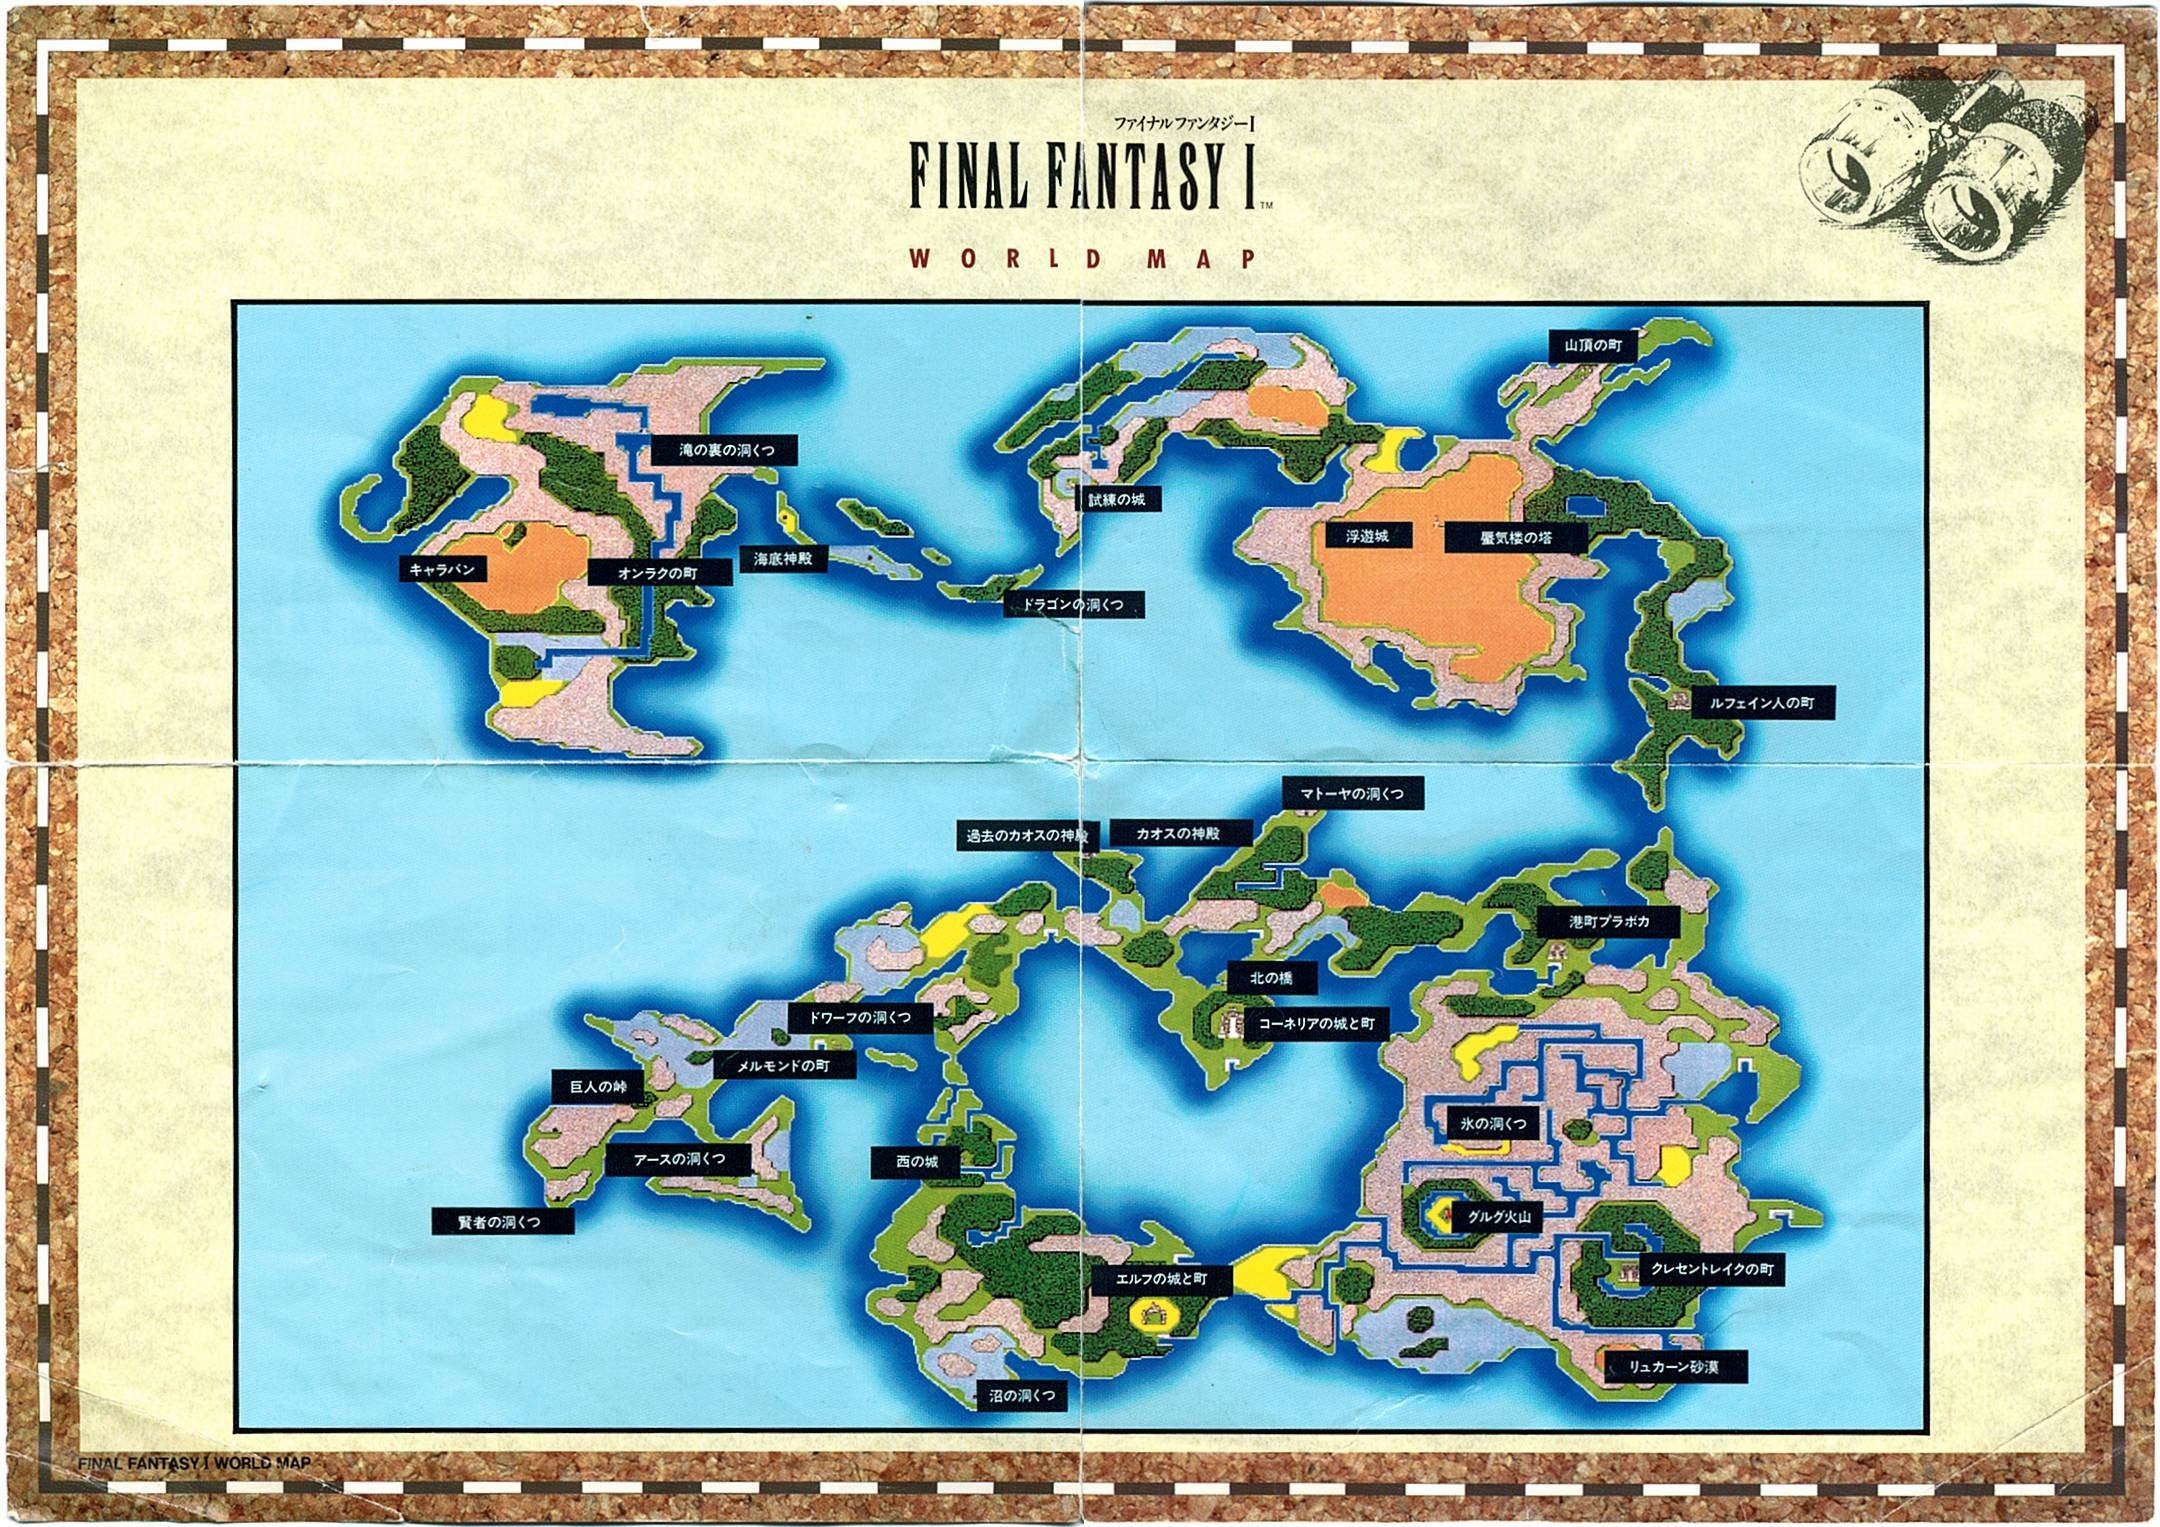 World Map The Final Fantasy Wiki 10 years of having more Final Fantasy in